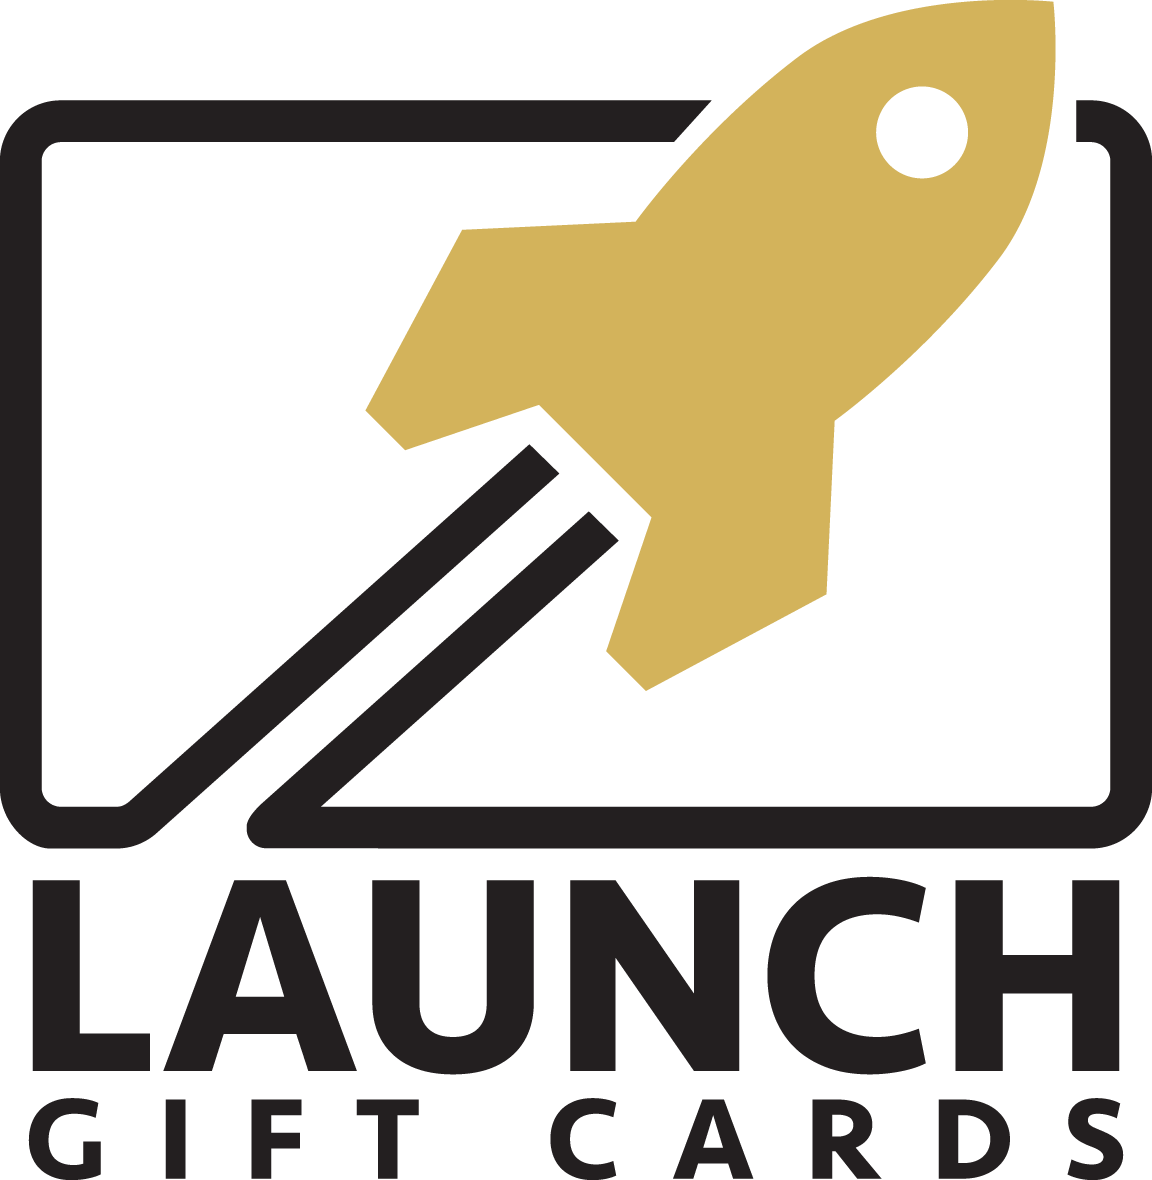 Launch Gift Cards logo